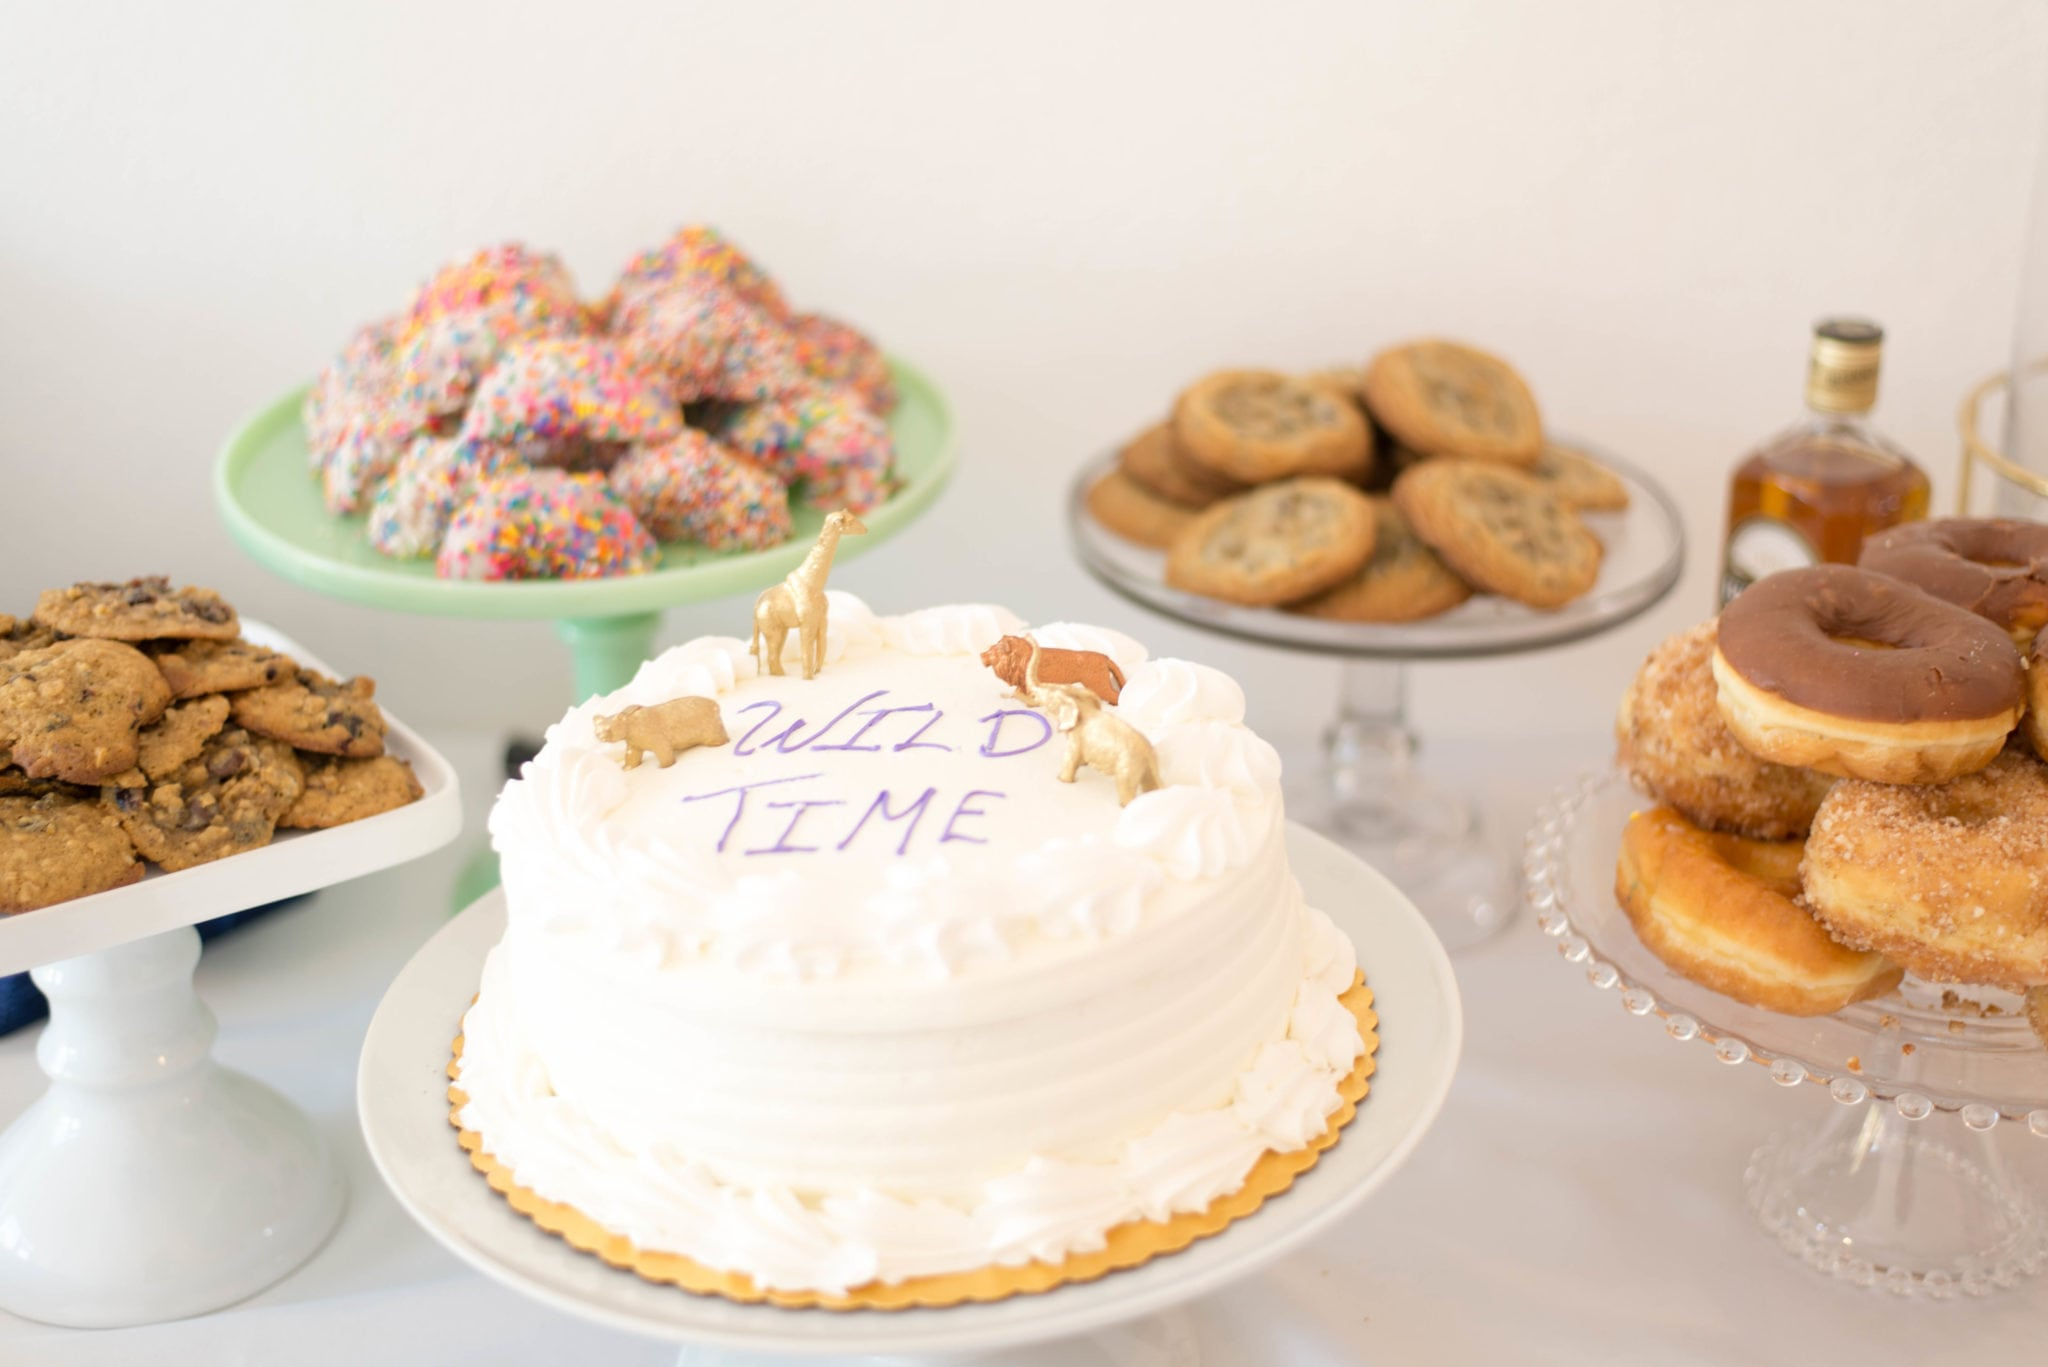 Photo of a cake surrounded by cookies